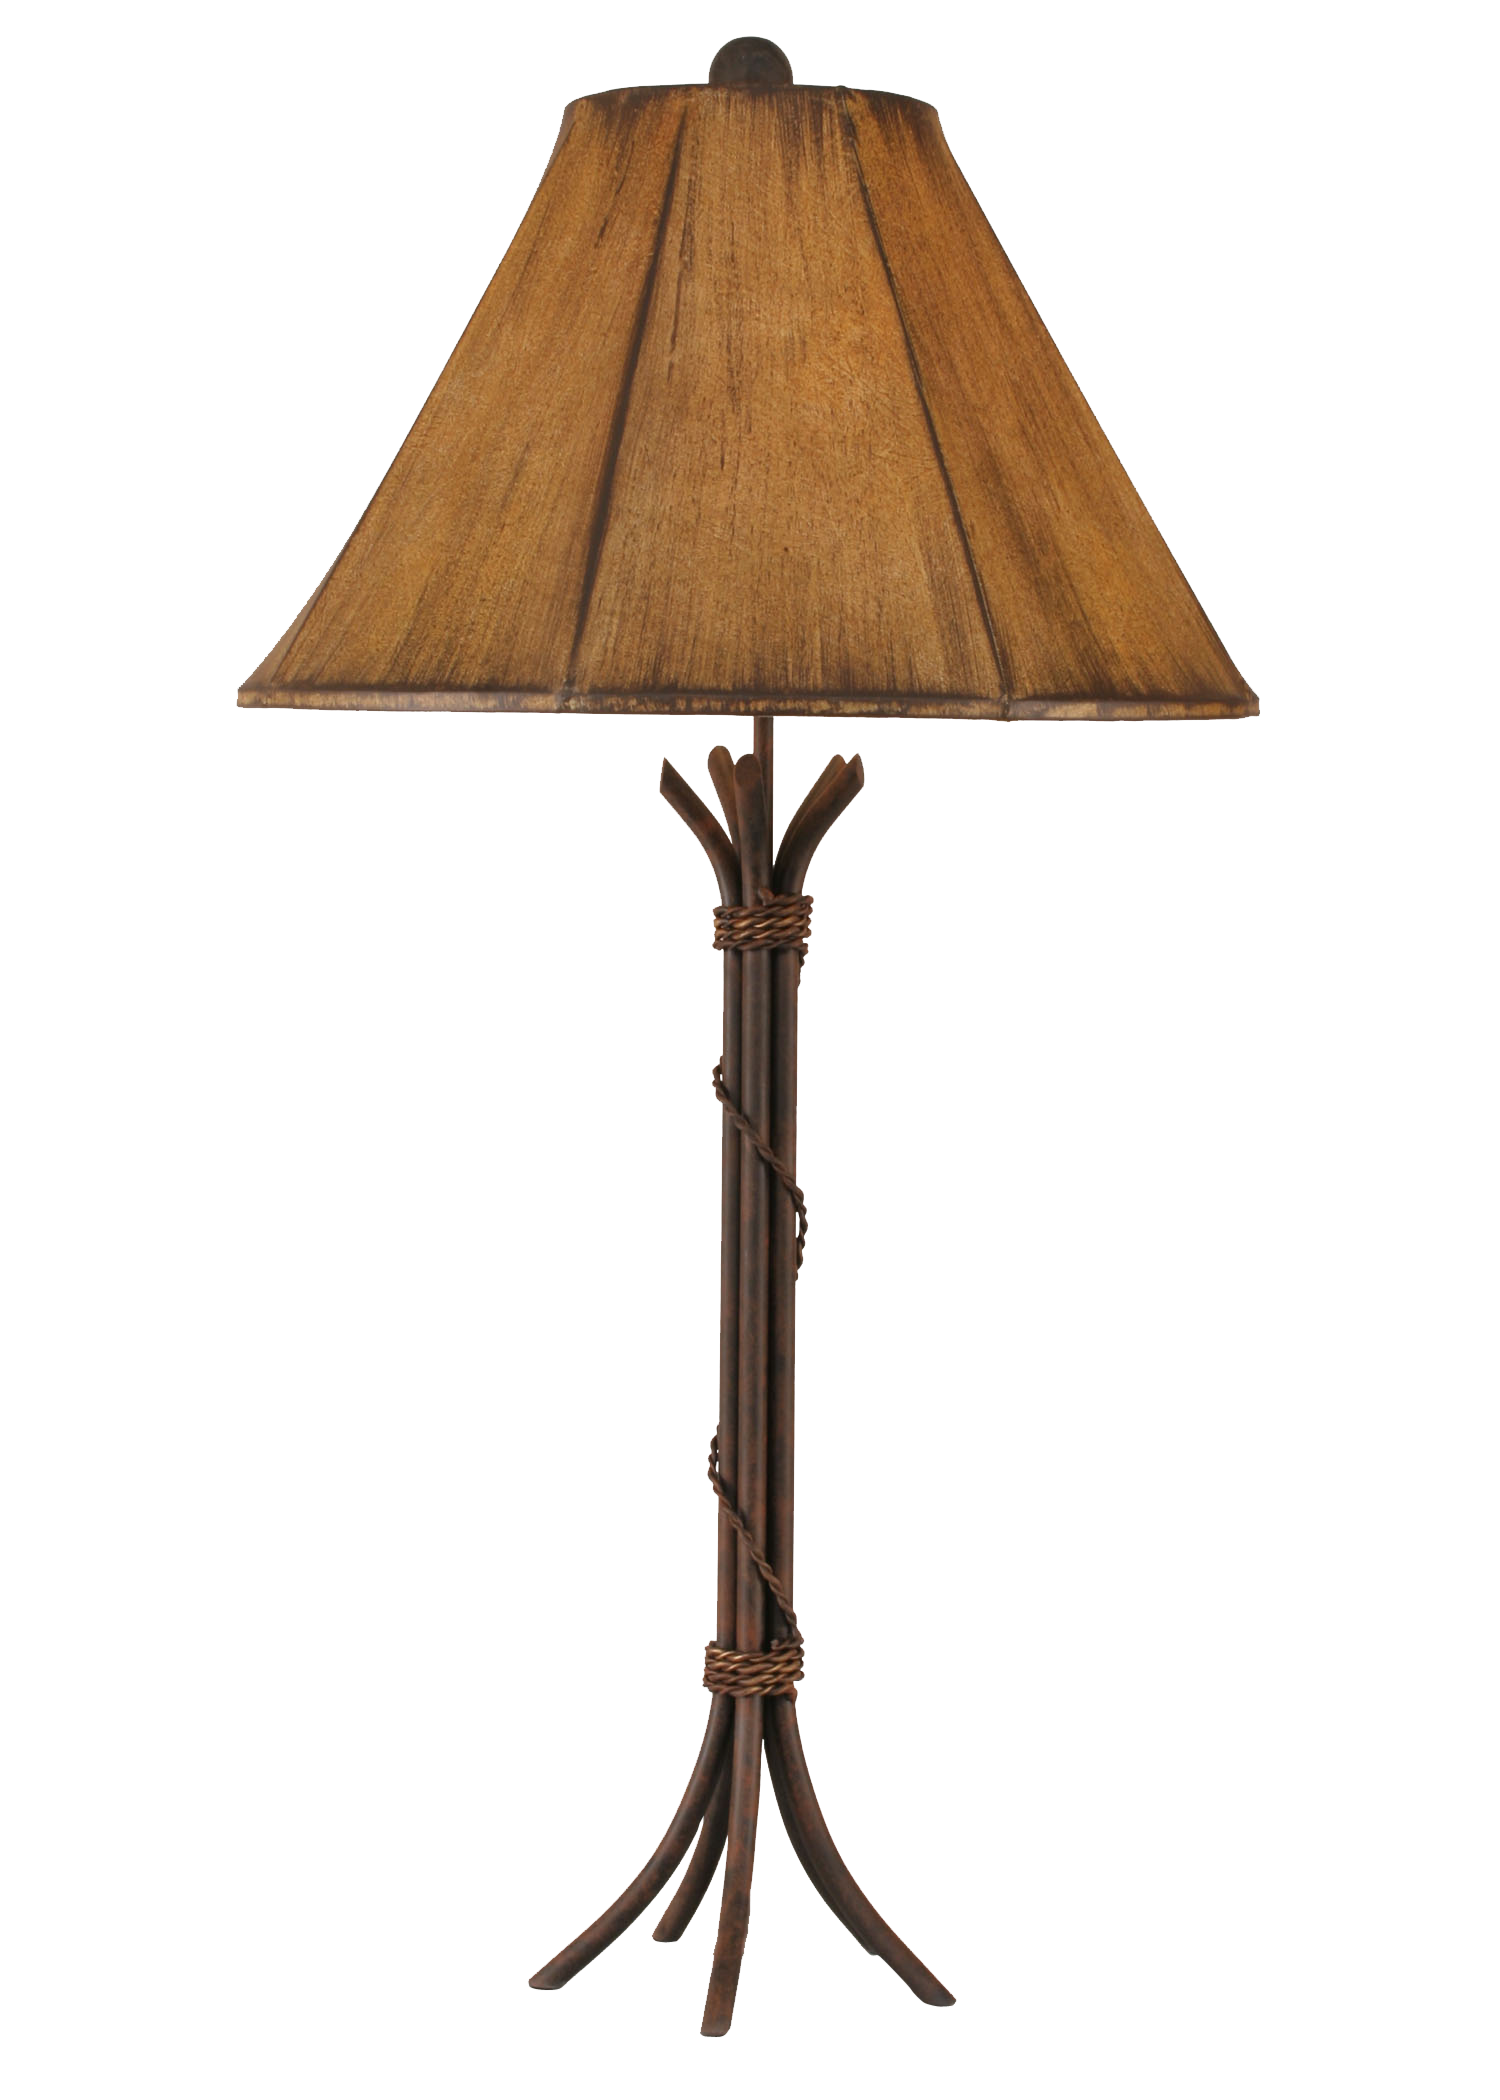 12R30D - Braided Wire - 32.5 Inch Rustic Table Lamp - ThunderHorseCabin.com